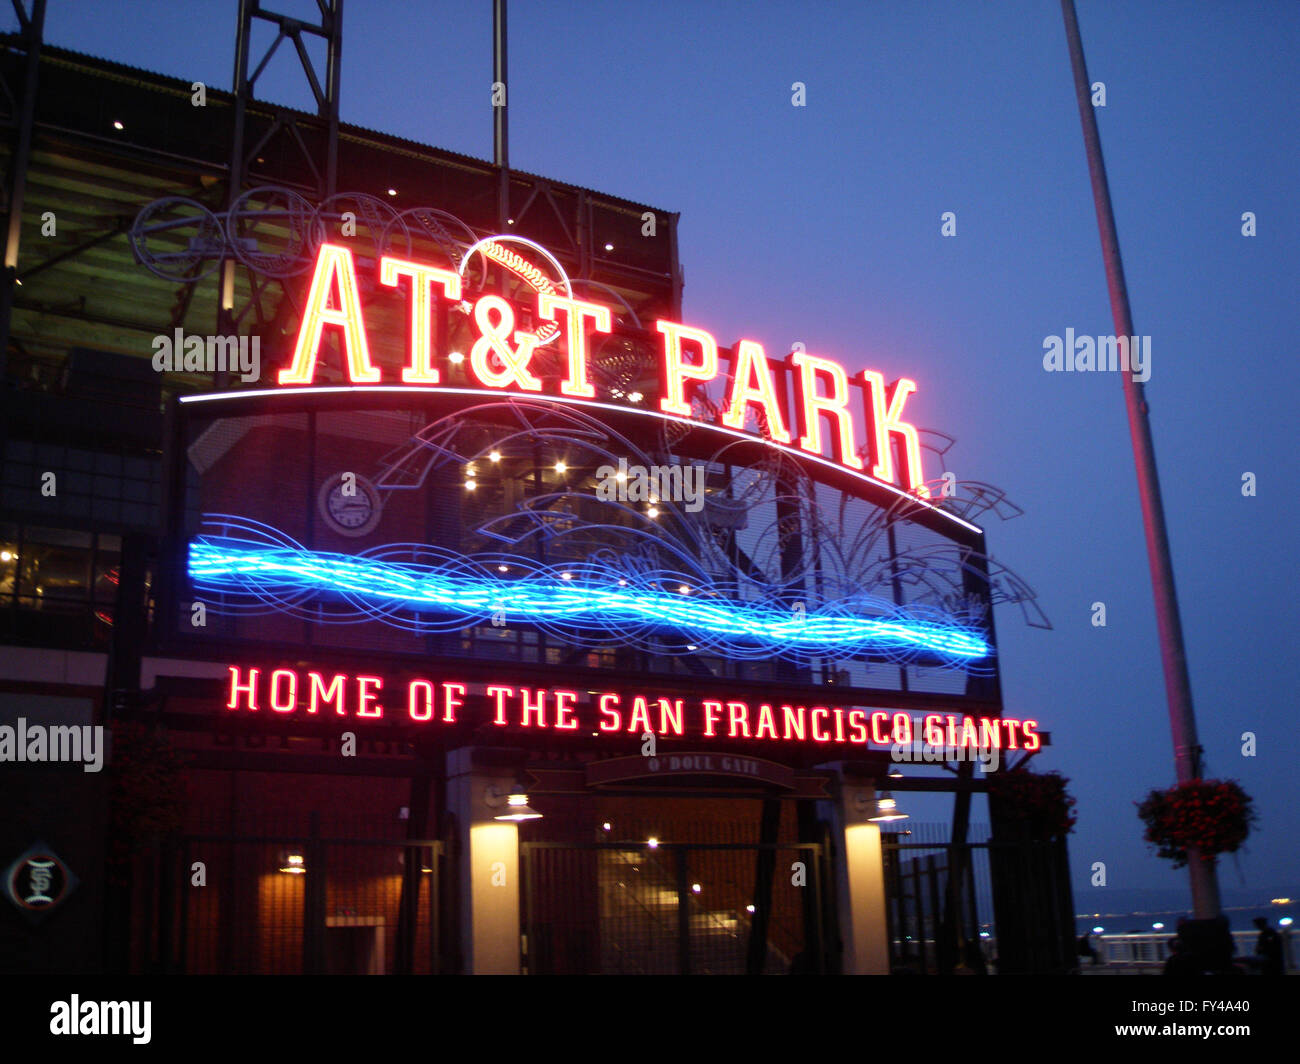 SAN FRANCISCO - APRIL 28: AT&T Park - Home of the Giants - Neon Sign at night with visual of water taken on - Stock Image